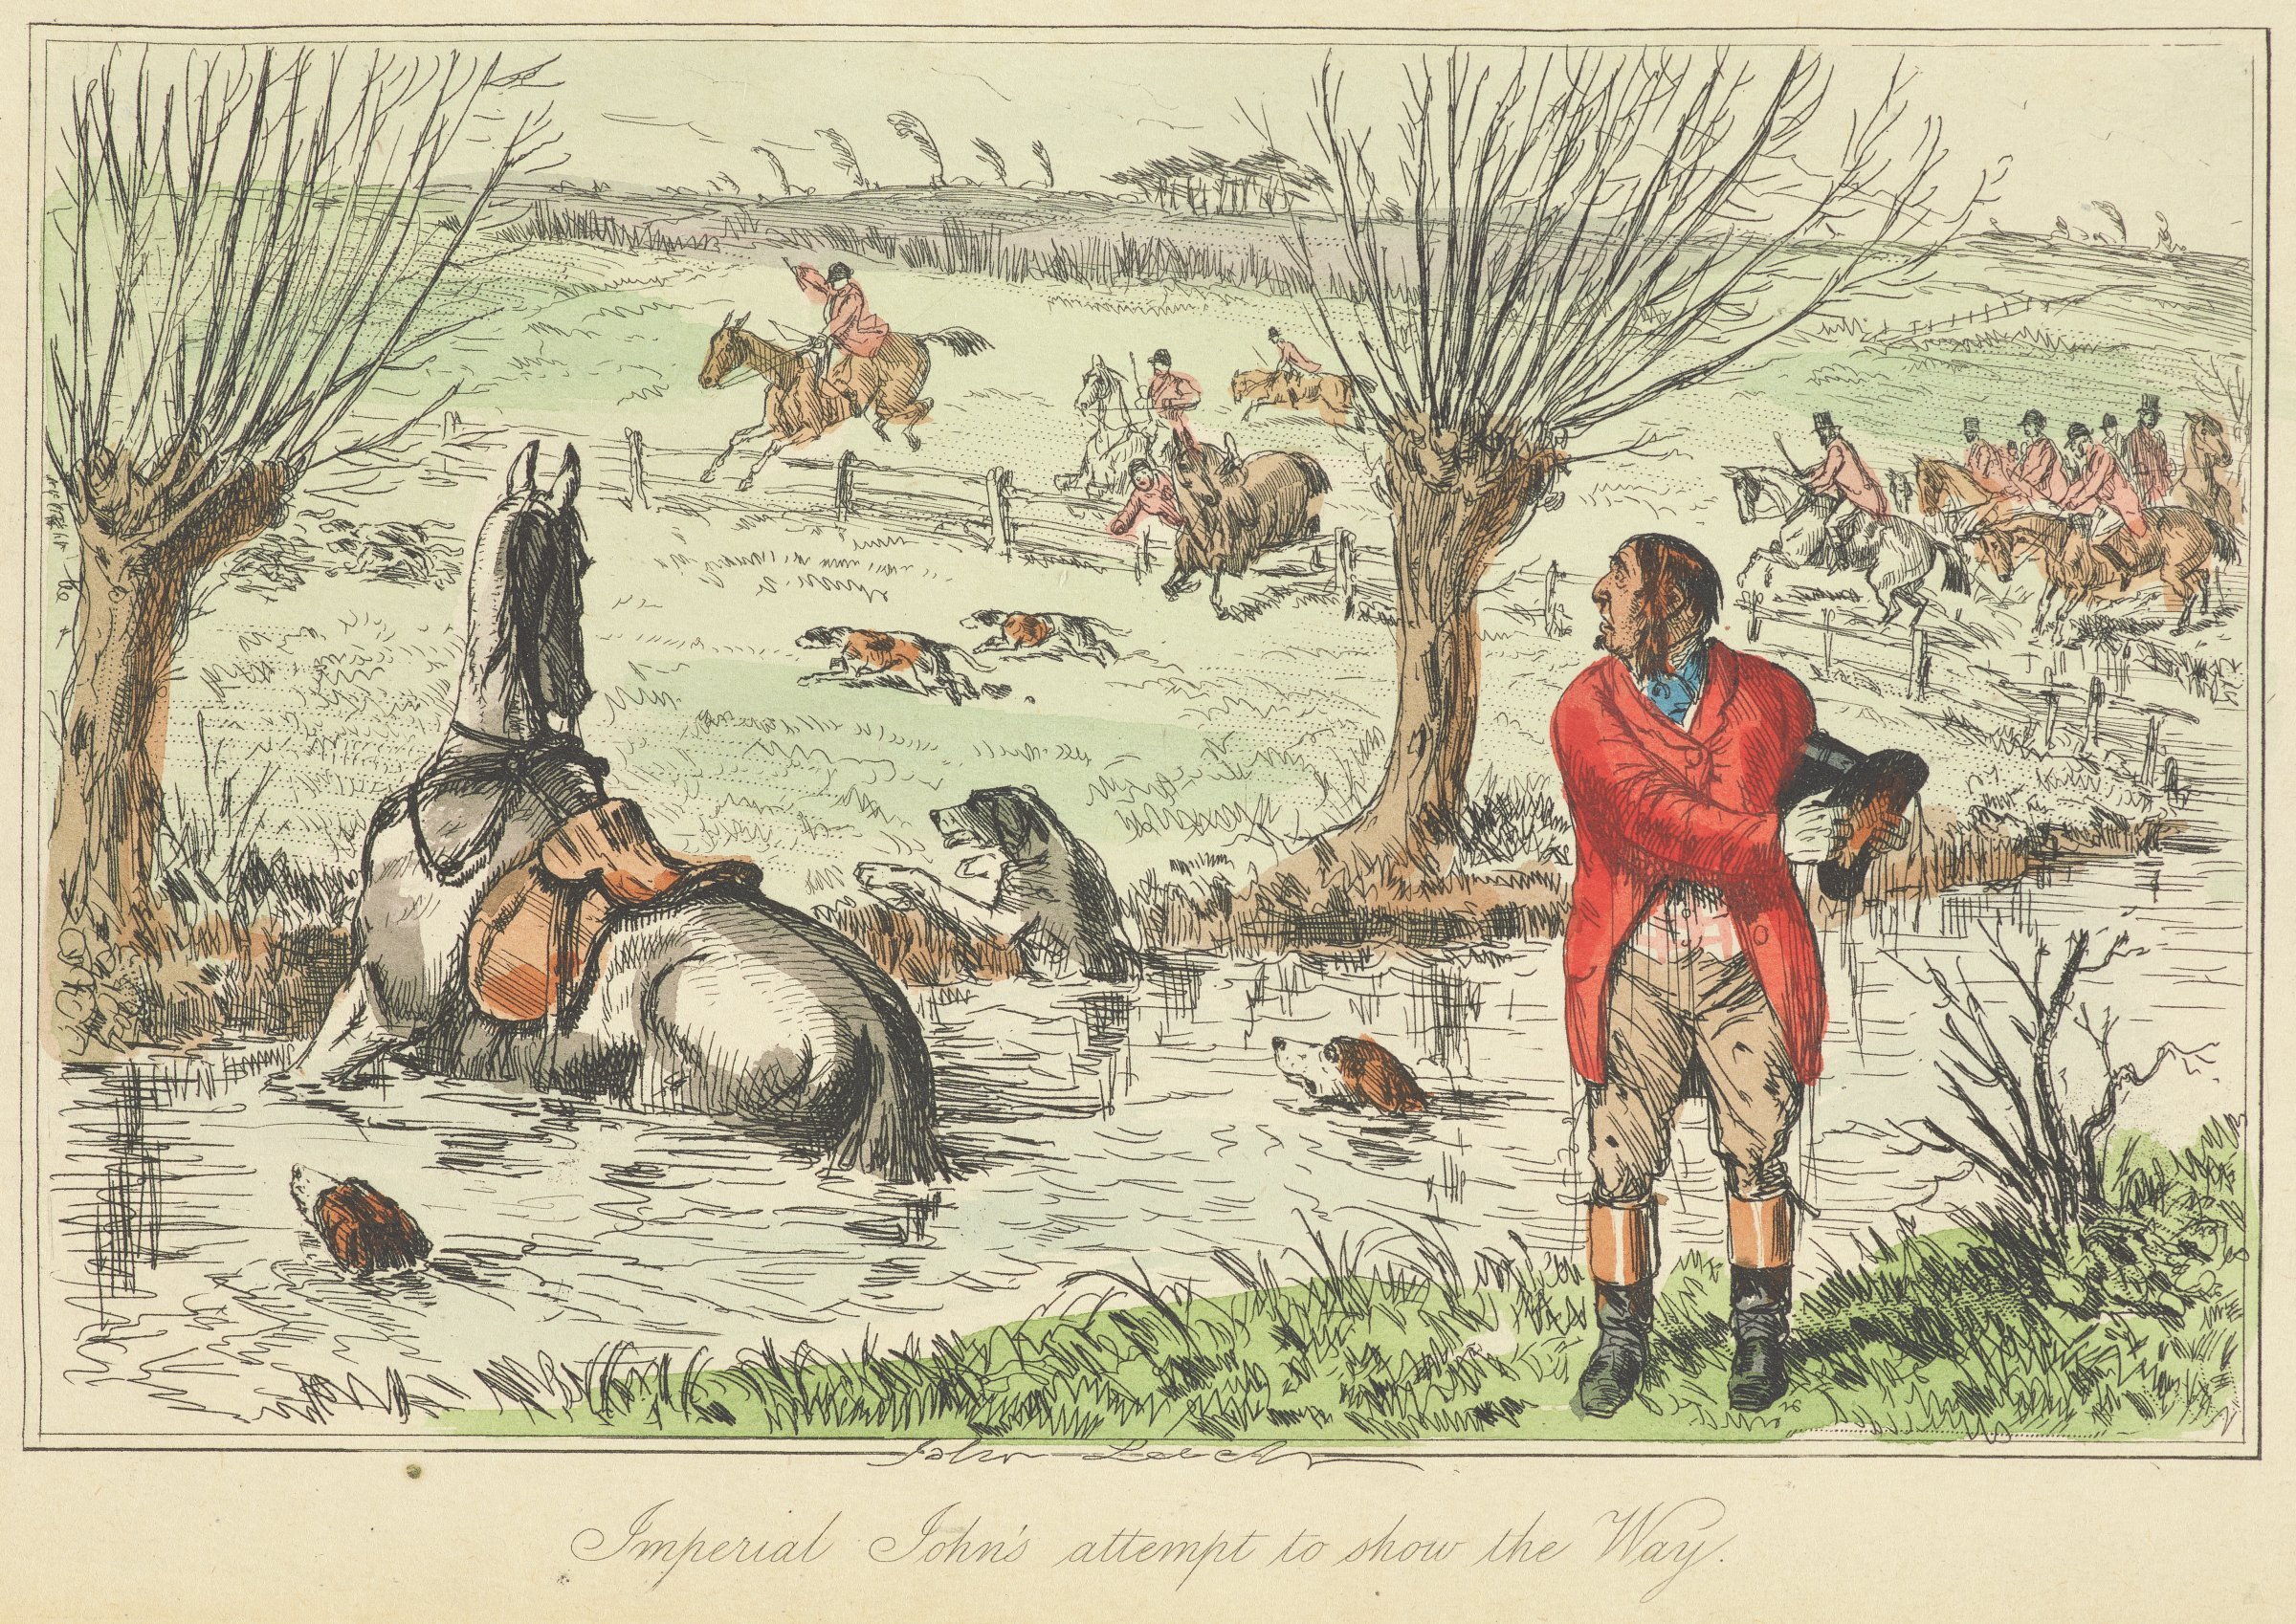 Imperial John's Attempt to Show the Way, John Leech, hand-colored engraving